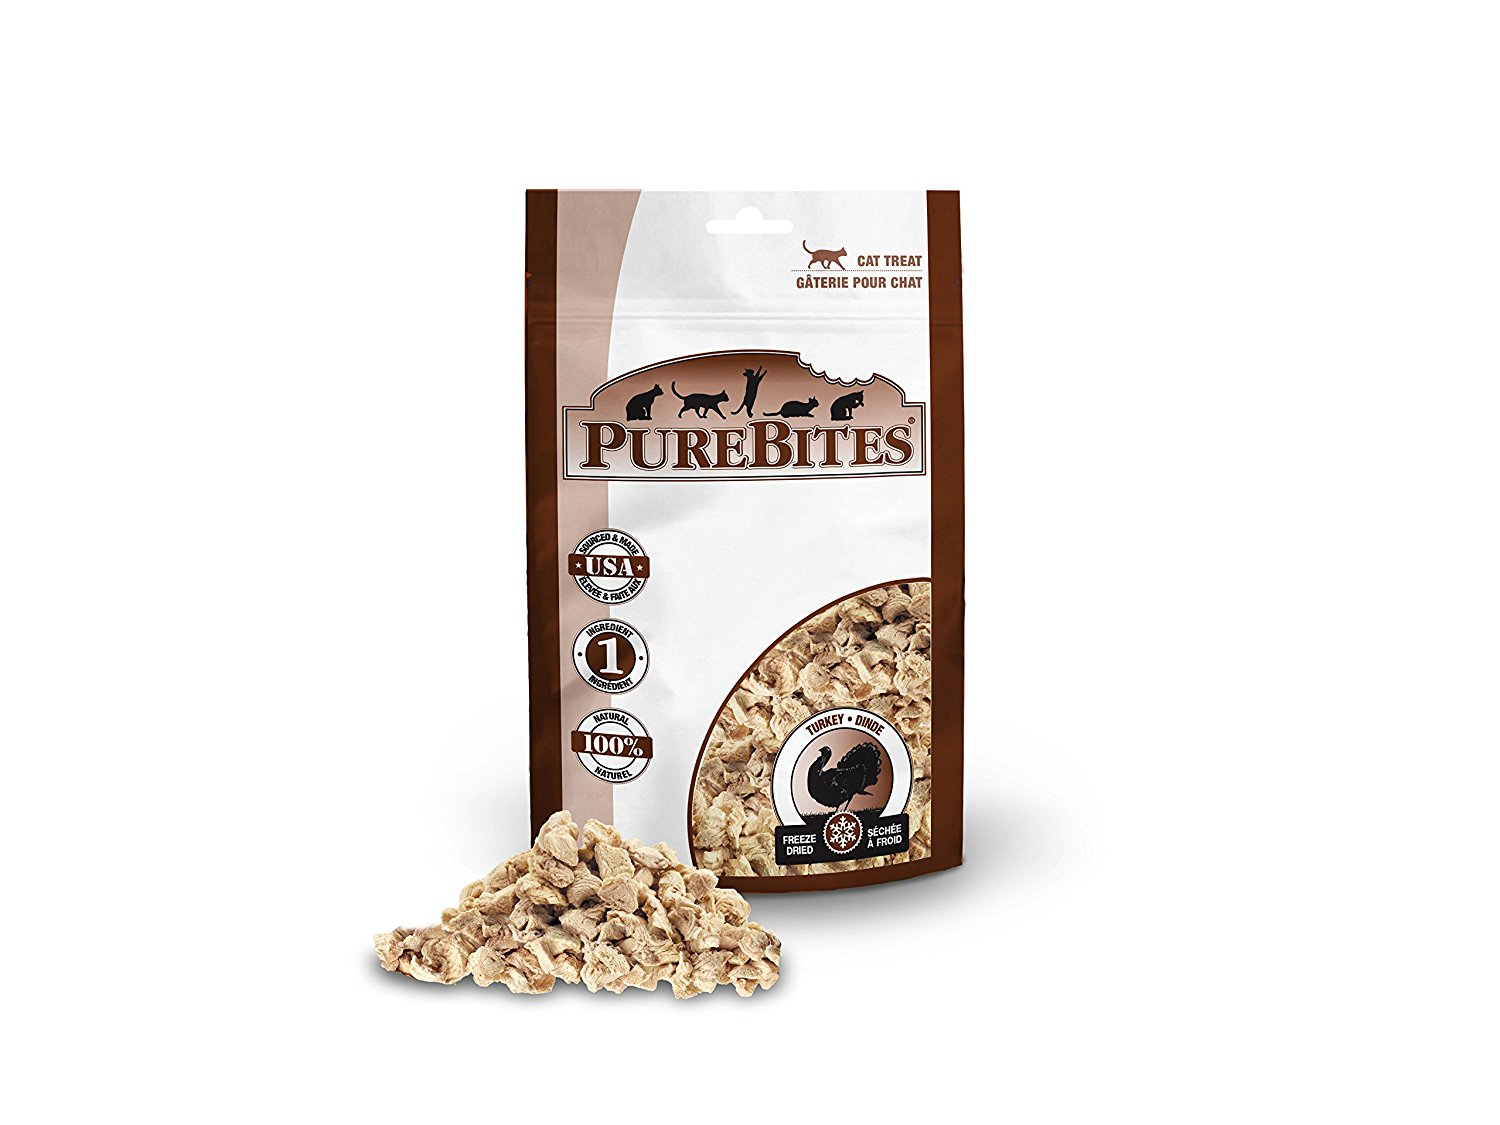 Freeze Dried Turkey Breast Cat Treats, Go ahead, turn the bag around and look at the ingredients. PureBites... by